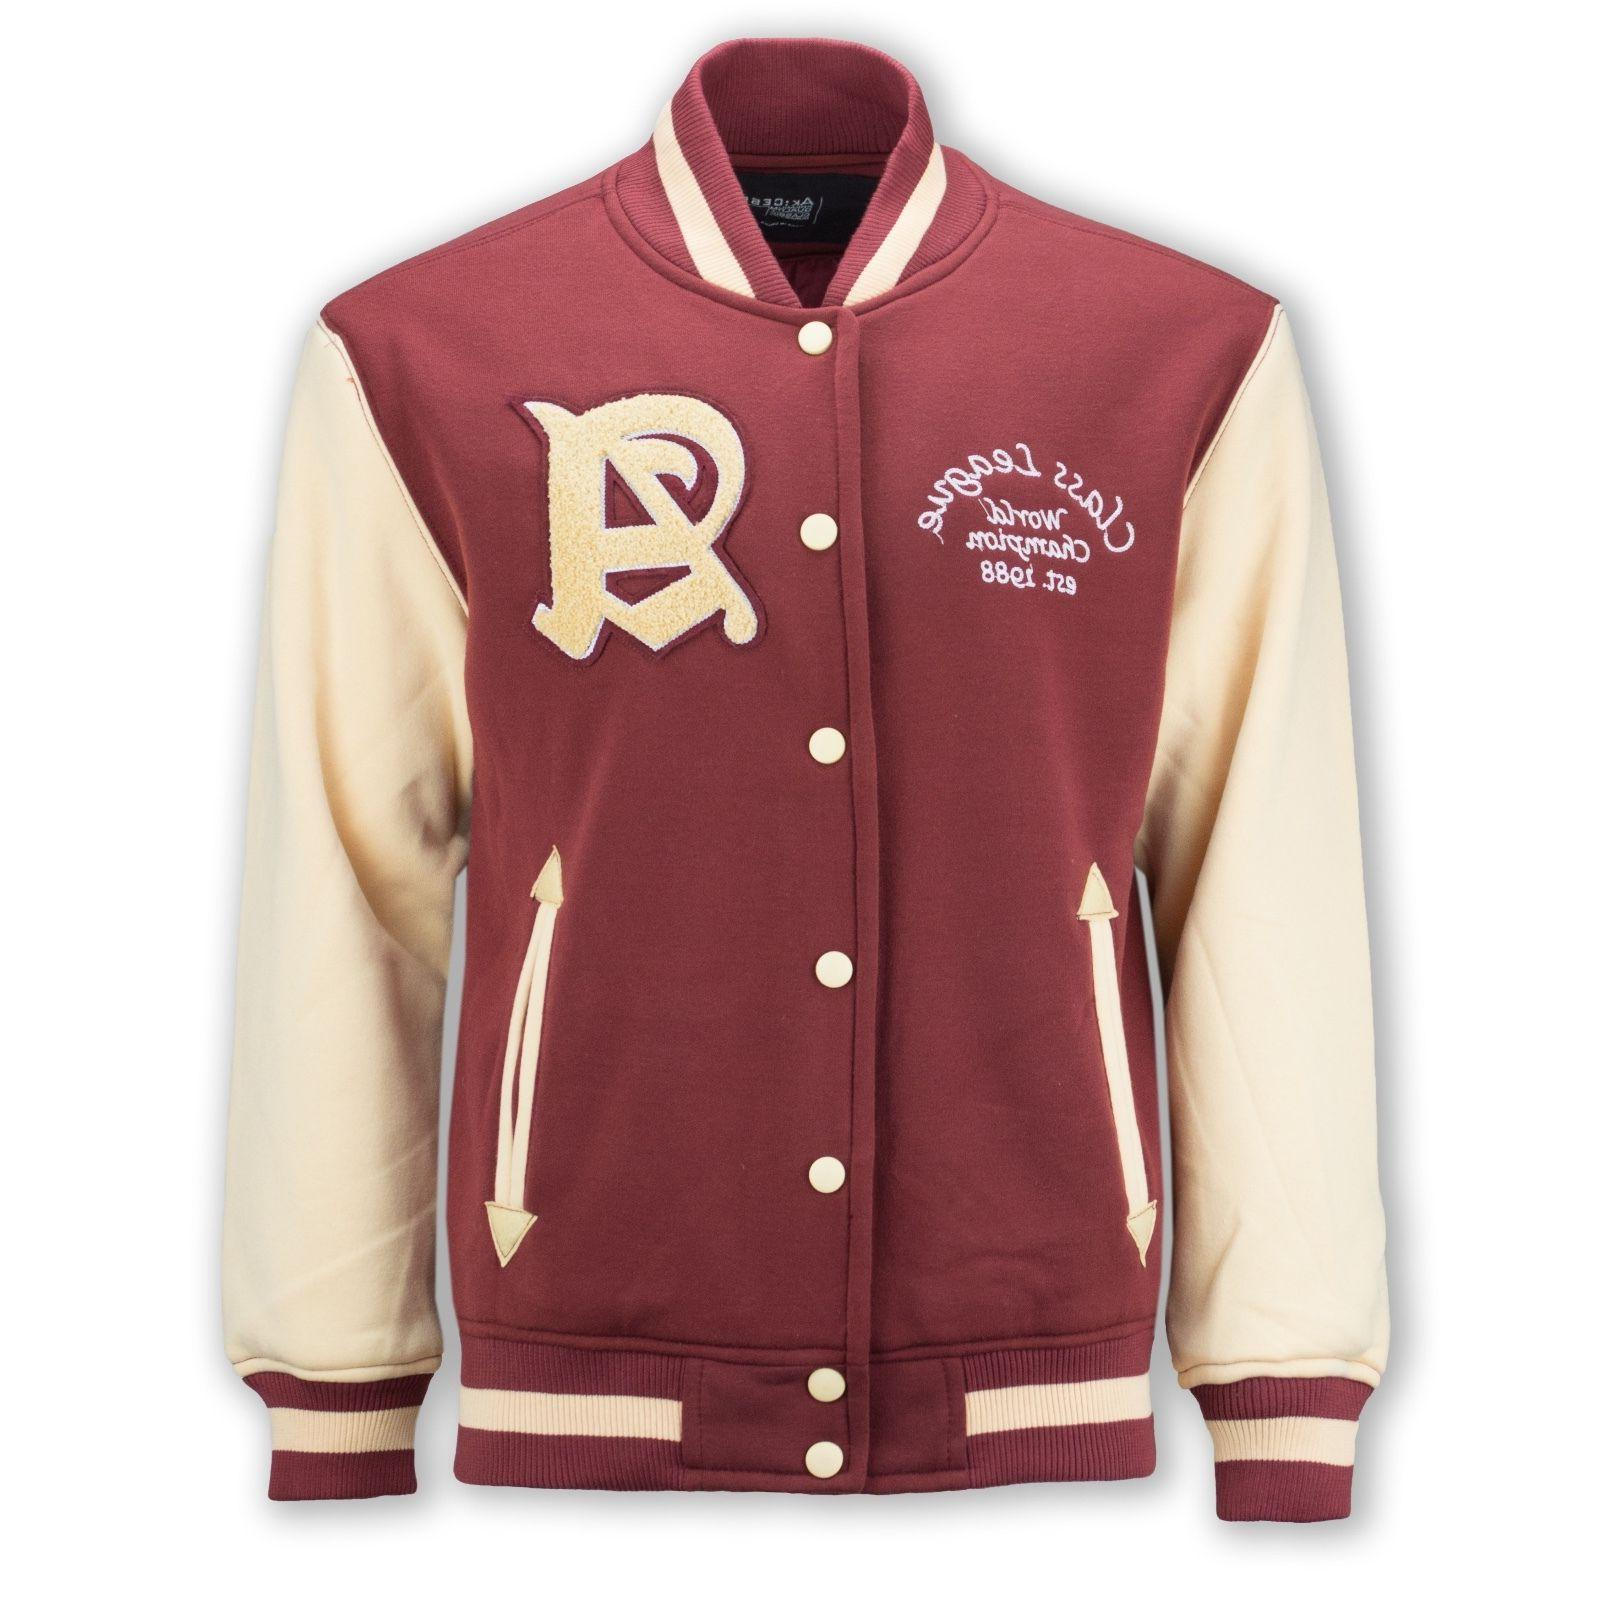 New Men Fleece Varsity Jacket Class League Red Tan 1988 Cham